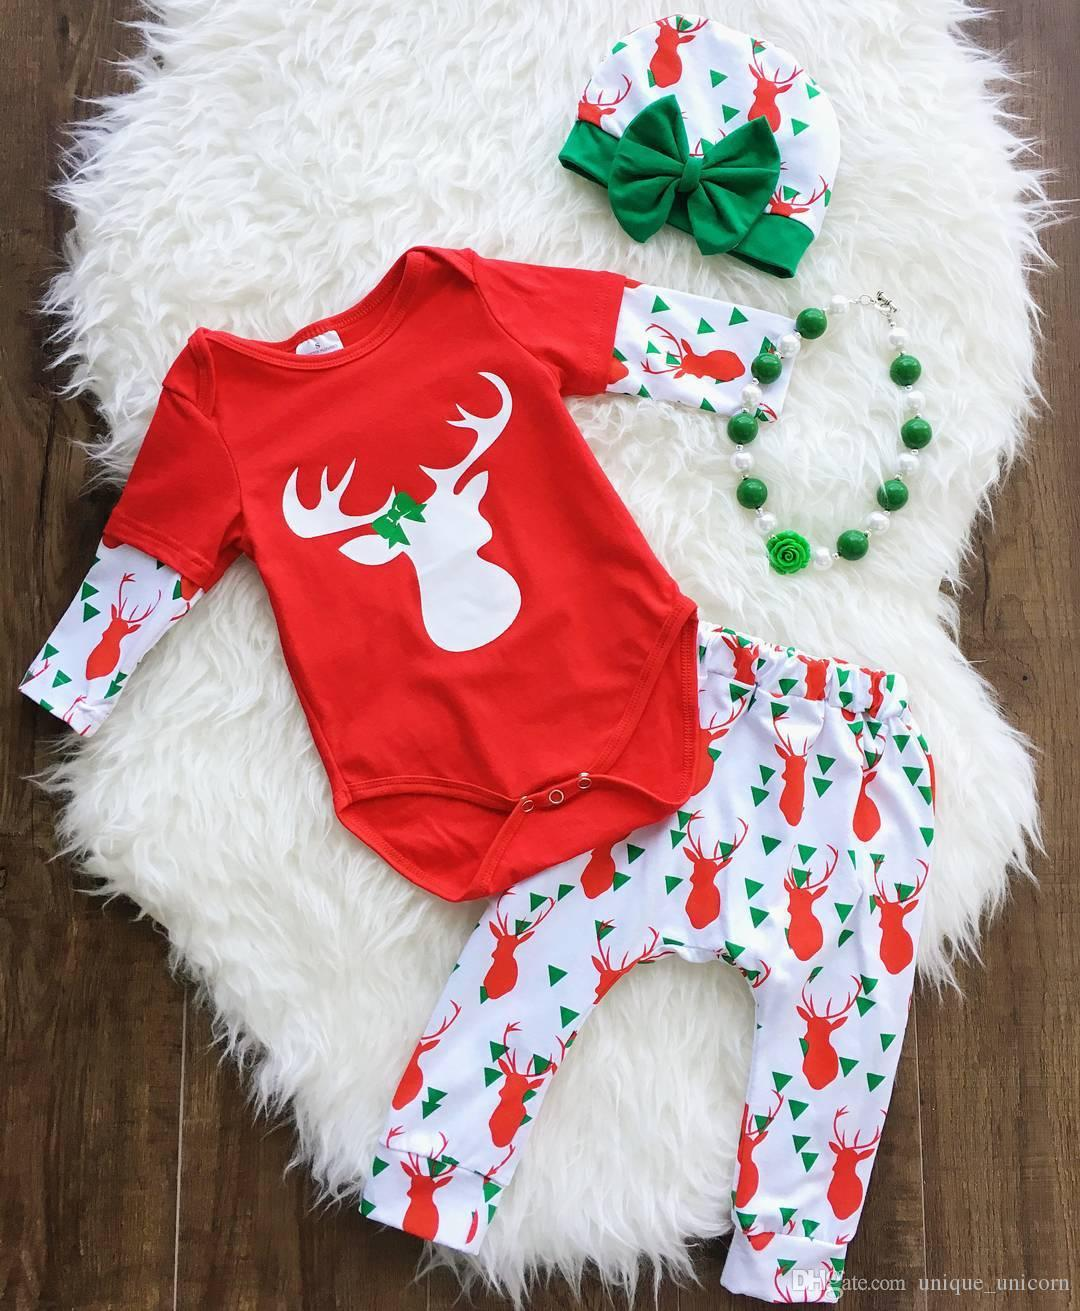 Newborn Christmas Outfit Girl.2019 2017 Ins Baby Girls Christmas Sets Infant Toddler Red Romper Deer Printed Pants Bow Hat Set Cute Bodysuit Clothes Suits From Unique Unicorn